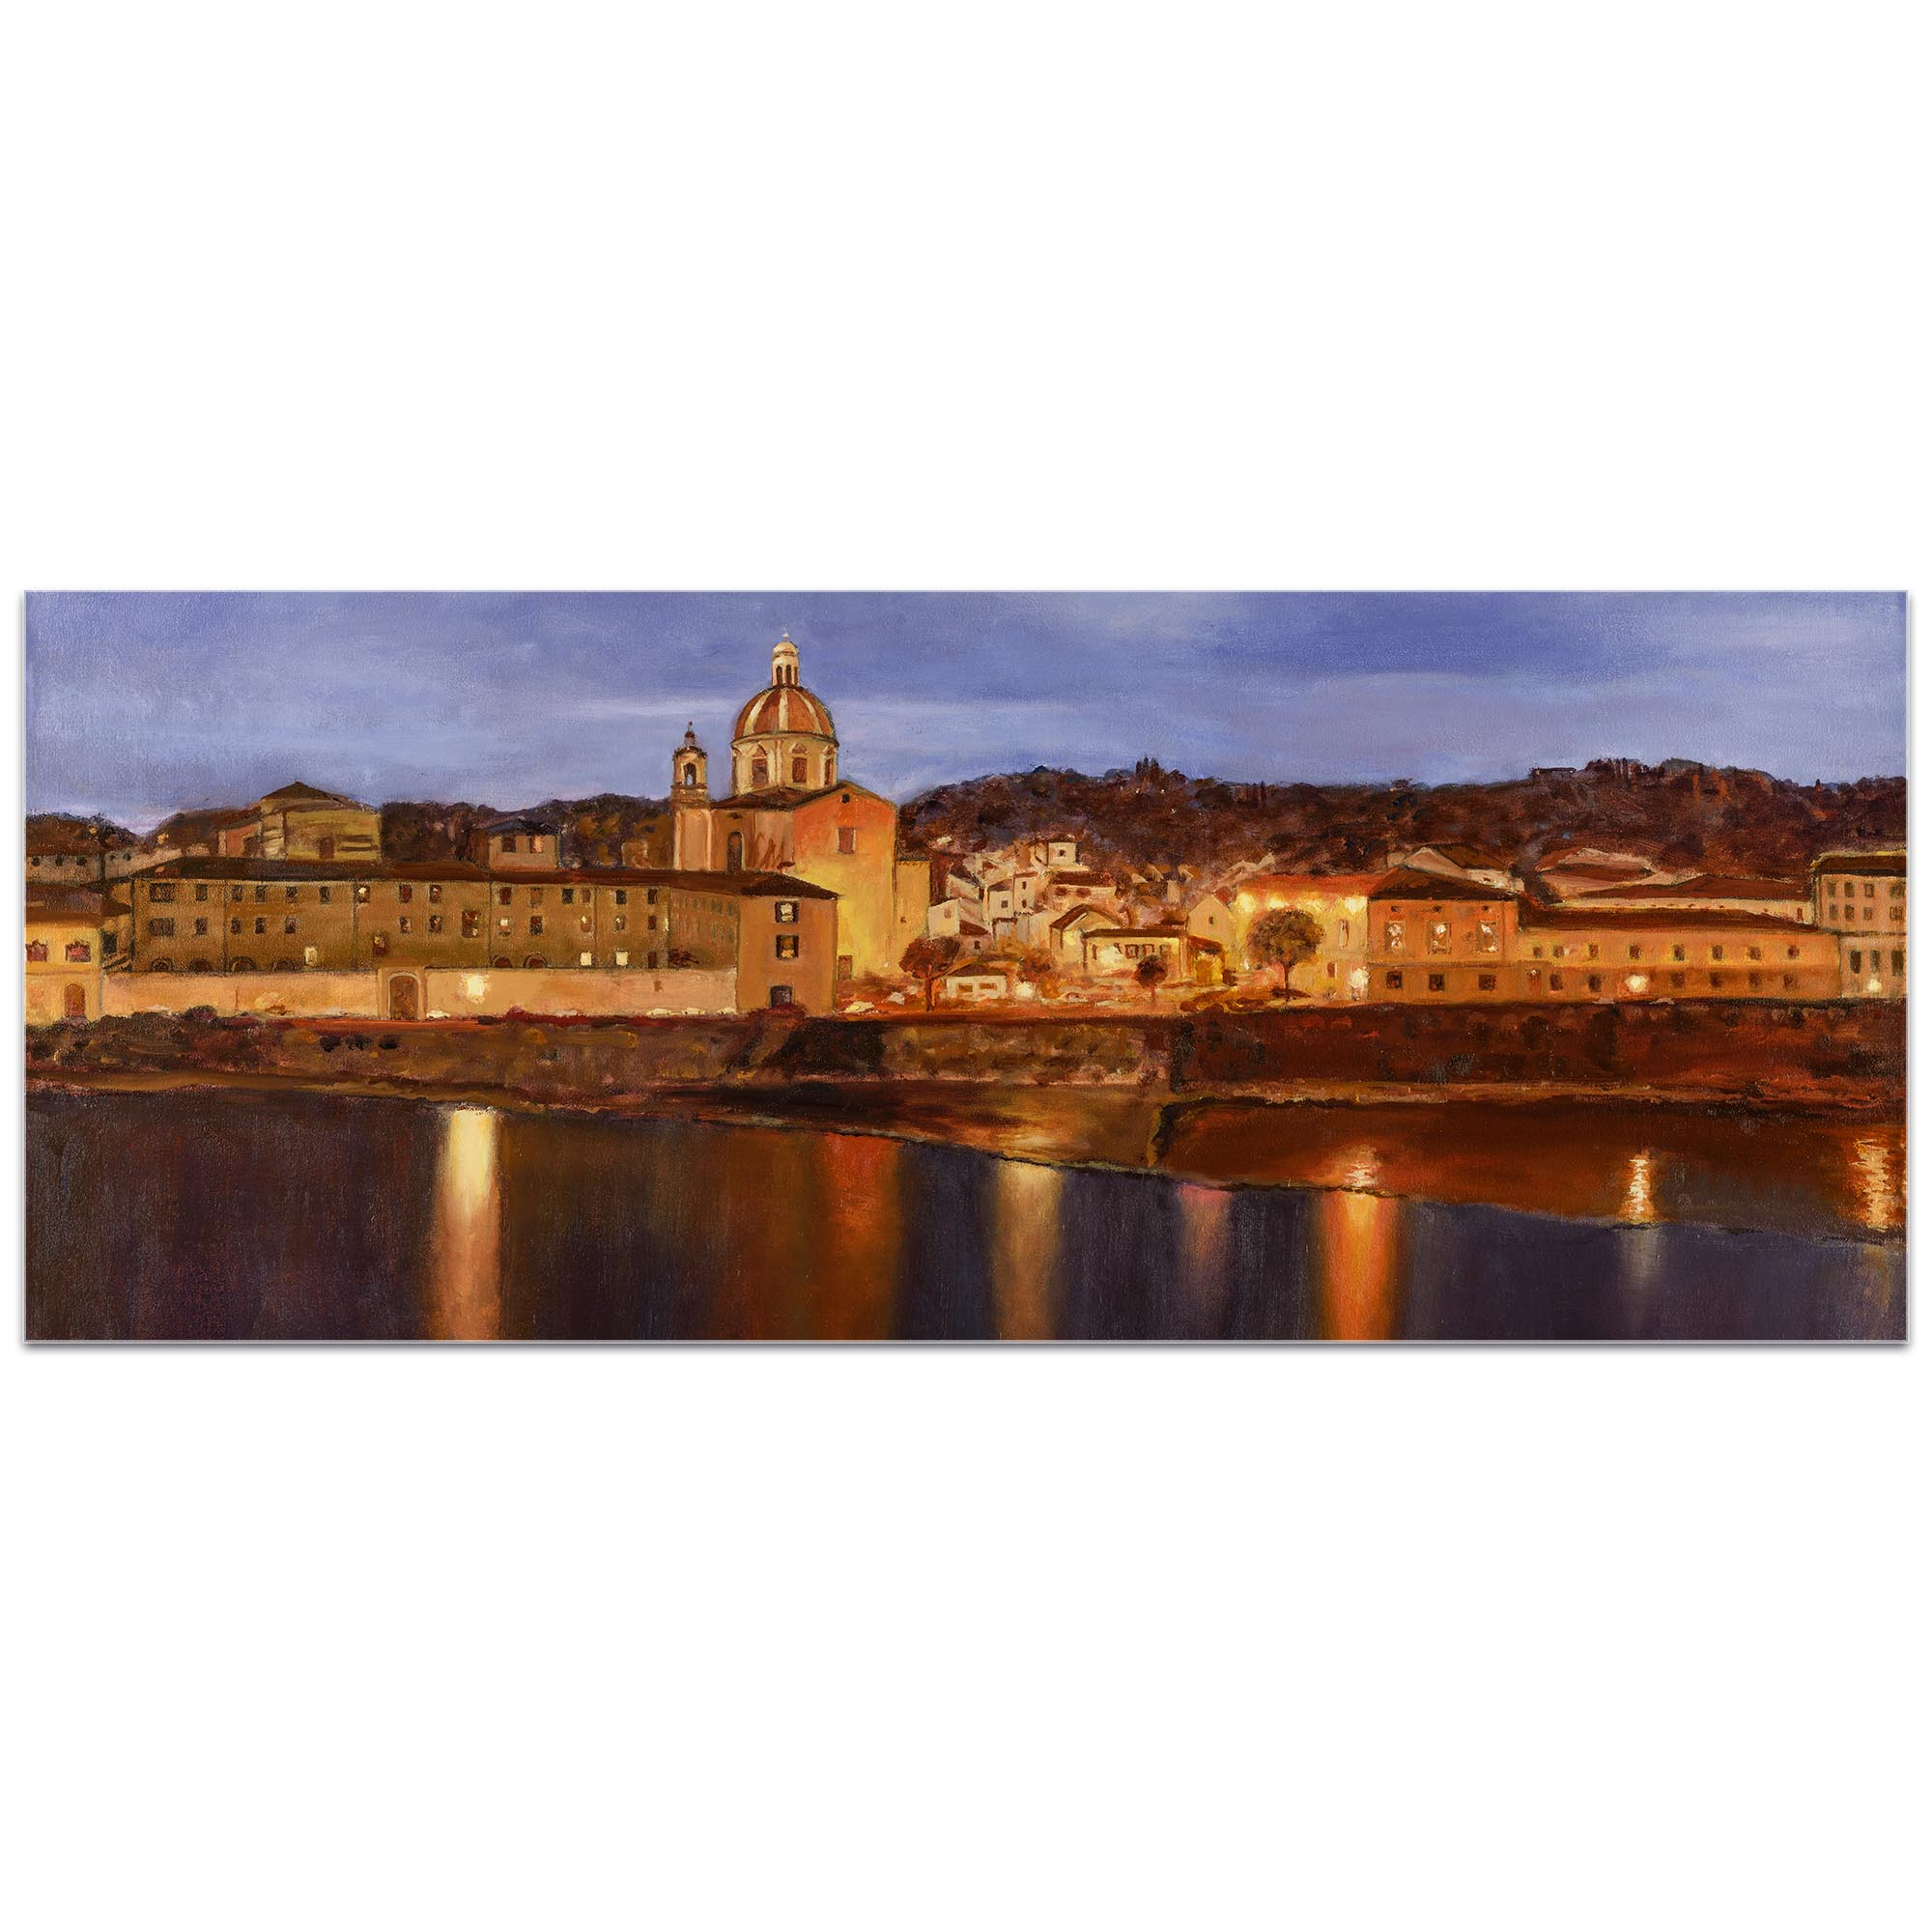 Traditional Wall Art 'Midnight in Florence' - Italian City Decor on Metal or Plexiglass - Image 2